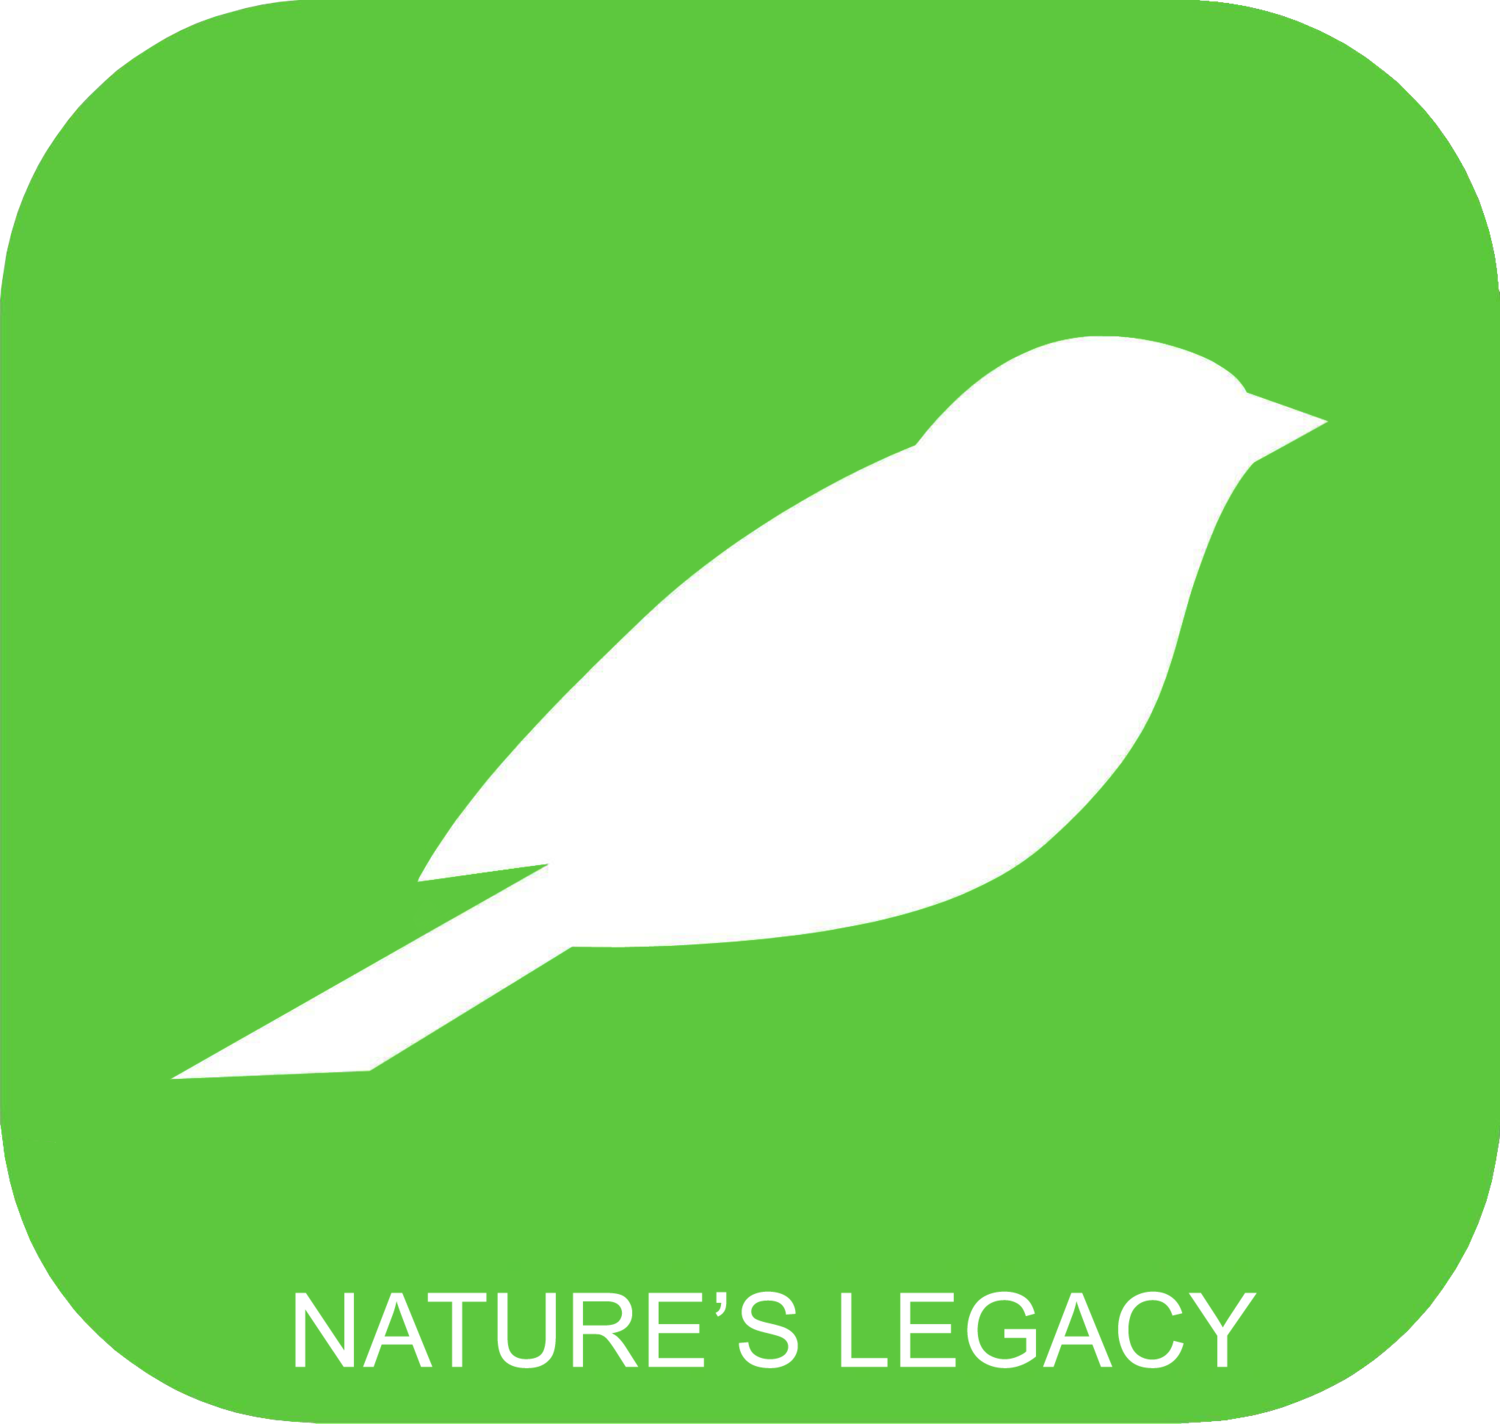 Nature's Legacy